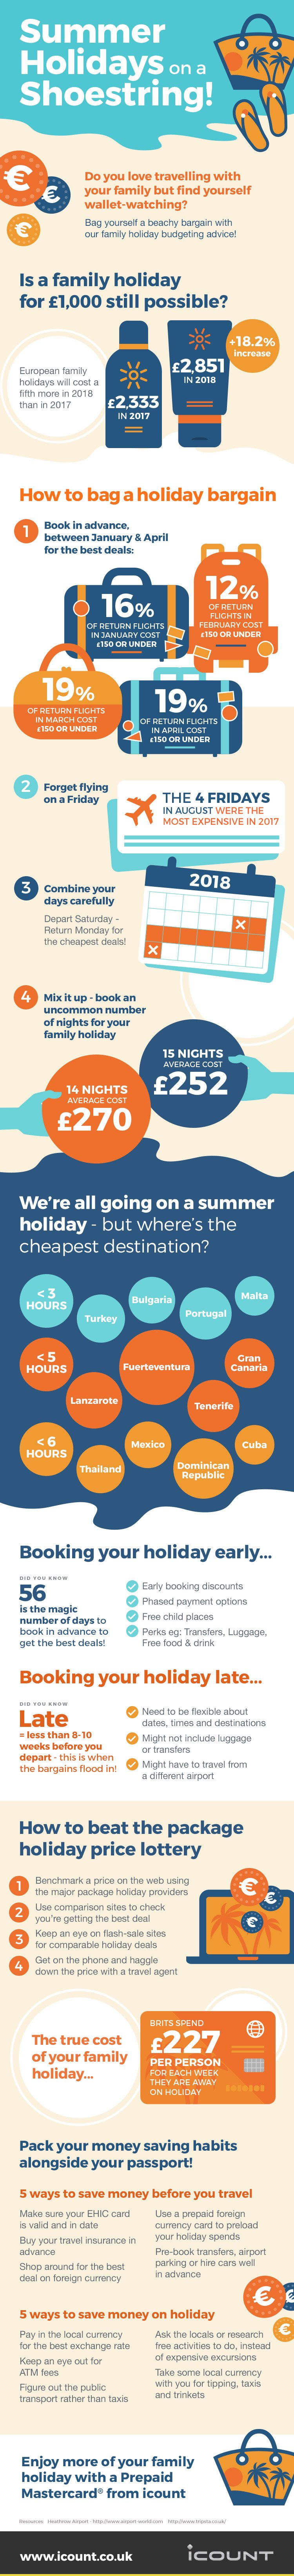 How to Stretch Your Summer Holiday Budget!